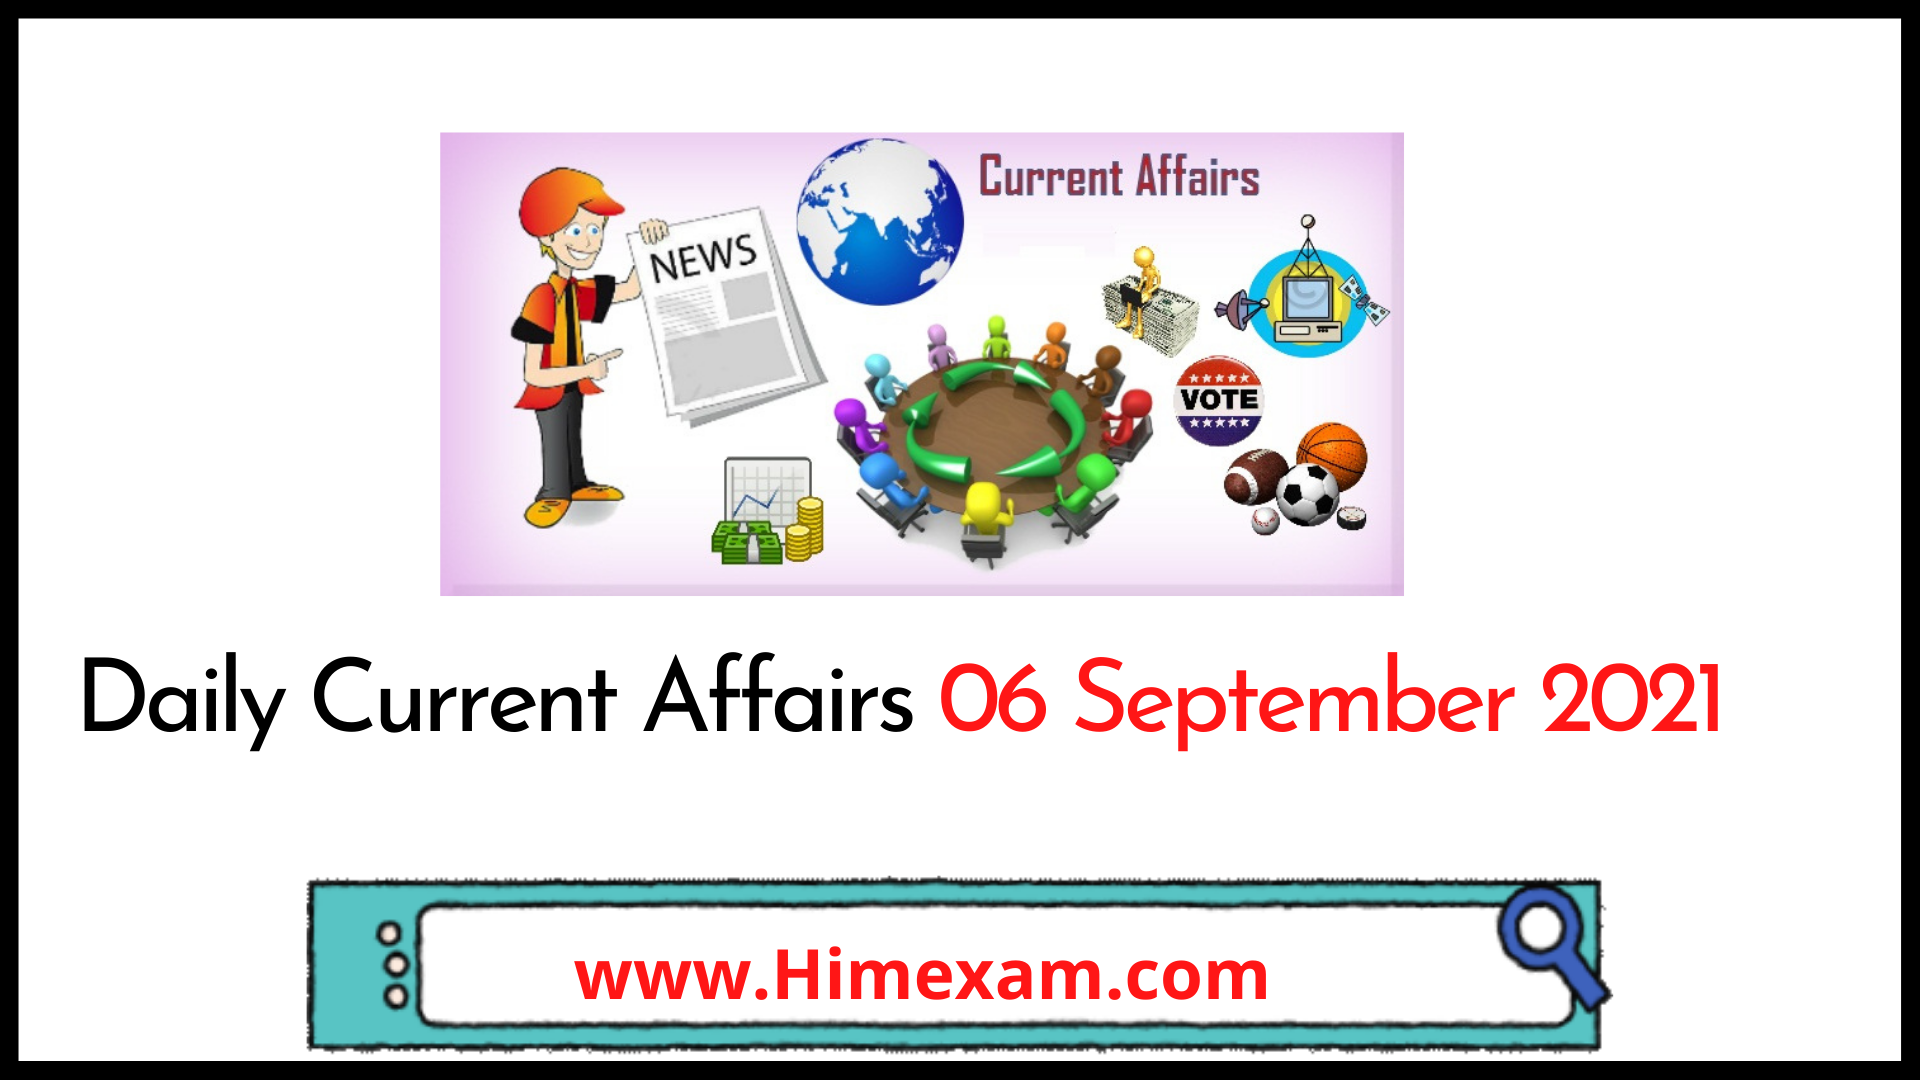 Daily Current Affairs 06 September 2021